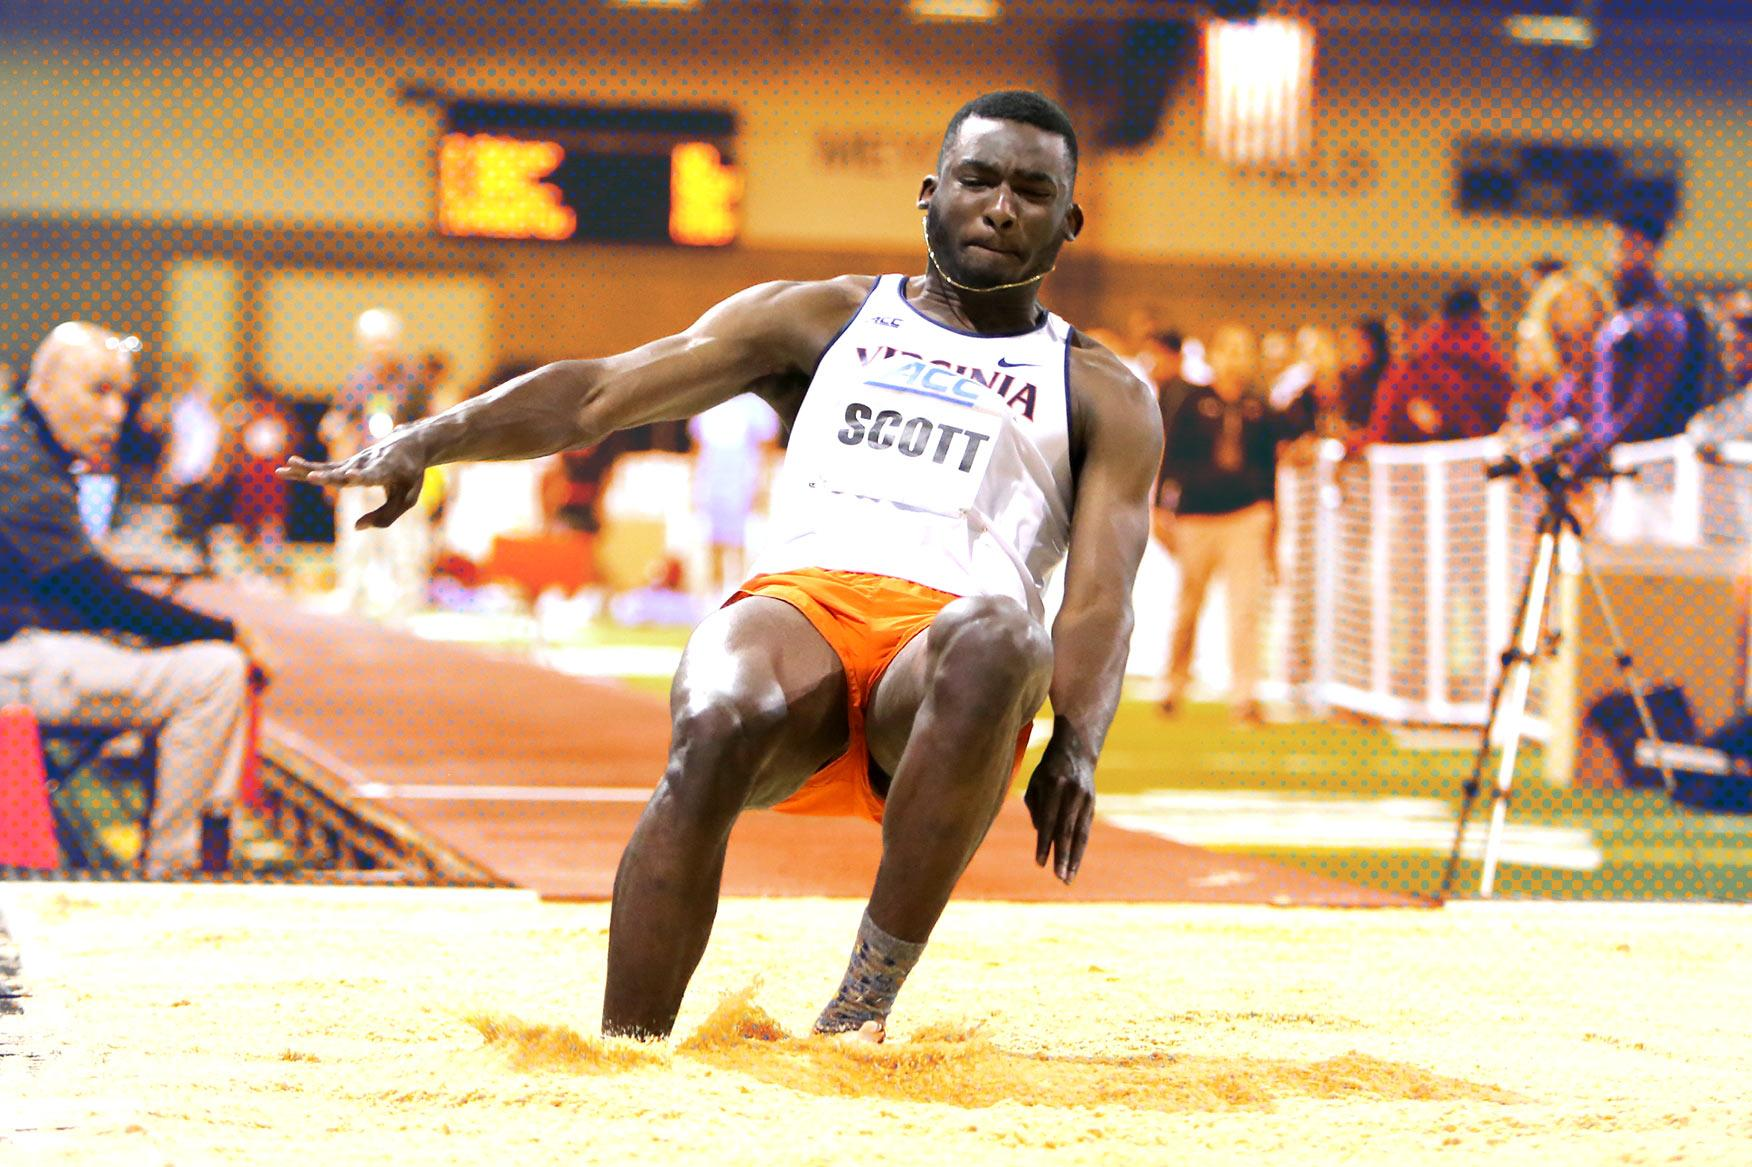 Jordan Scott has set UVA freshman records for the indoor and outdoor triple jump, in the latter event surpassing a mark that stood for 45 years.